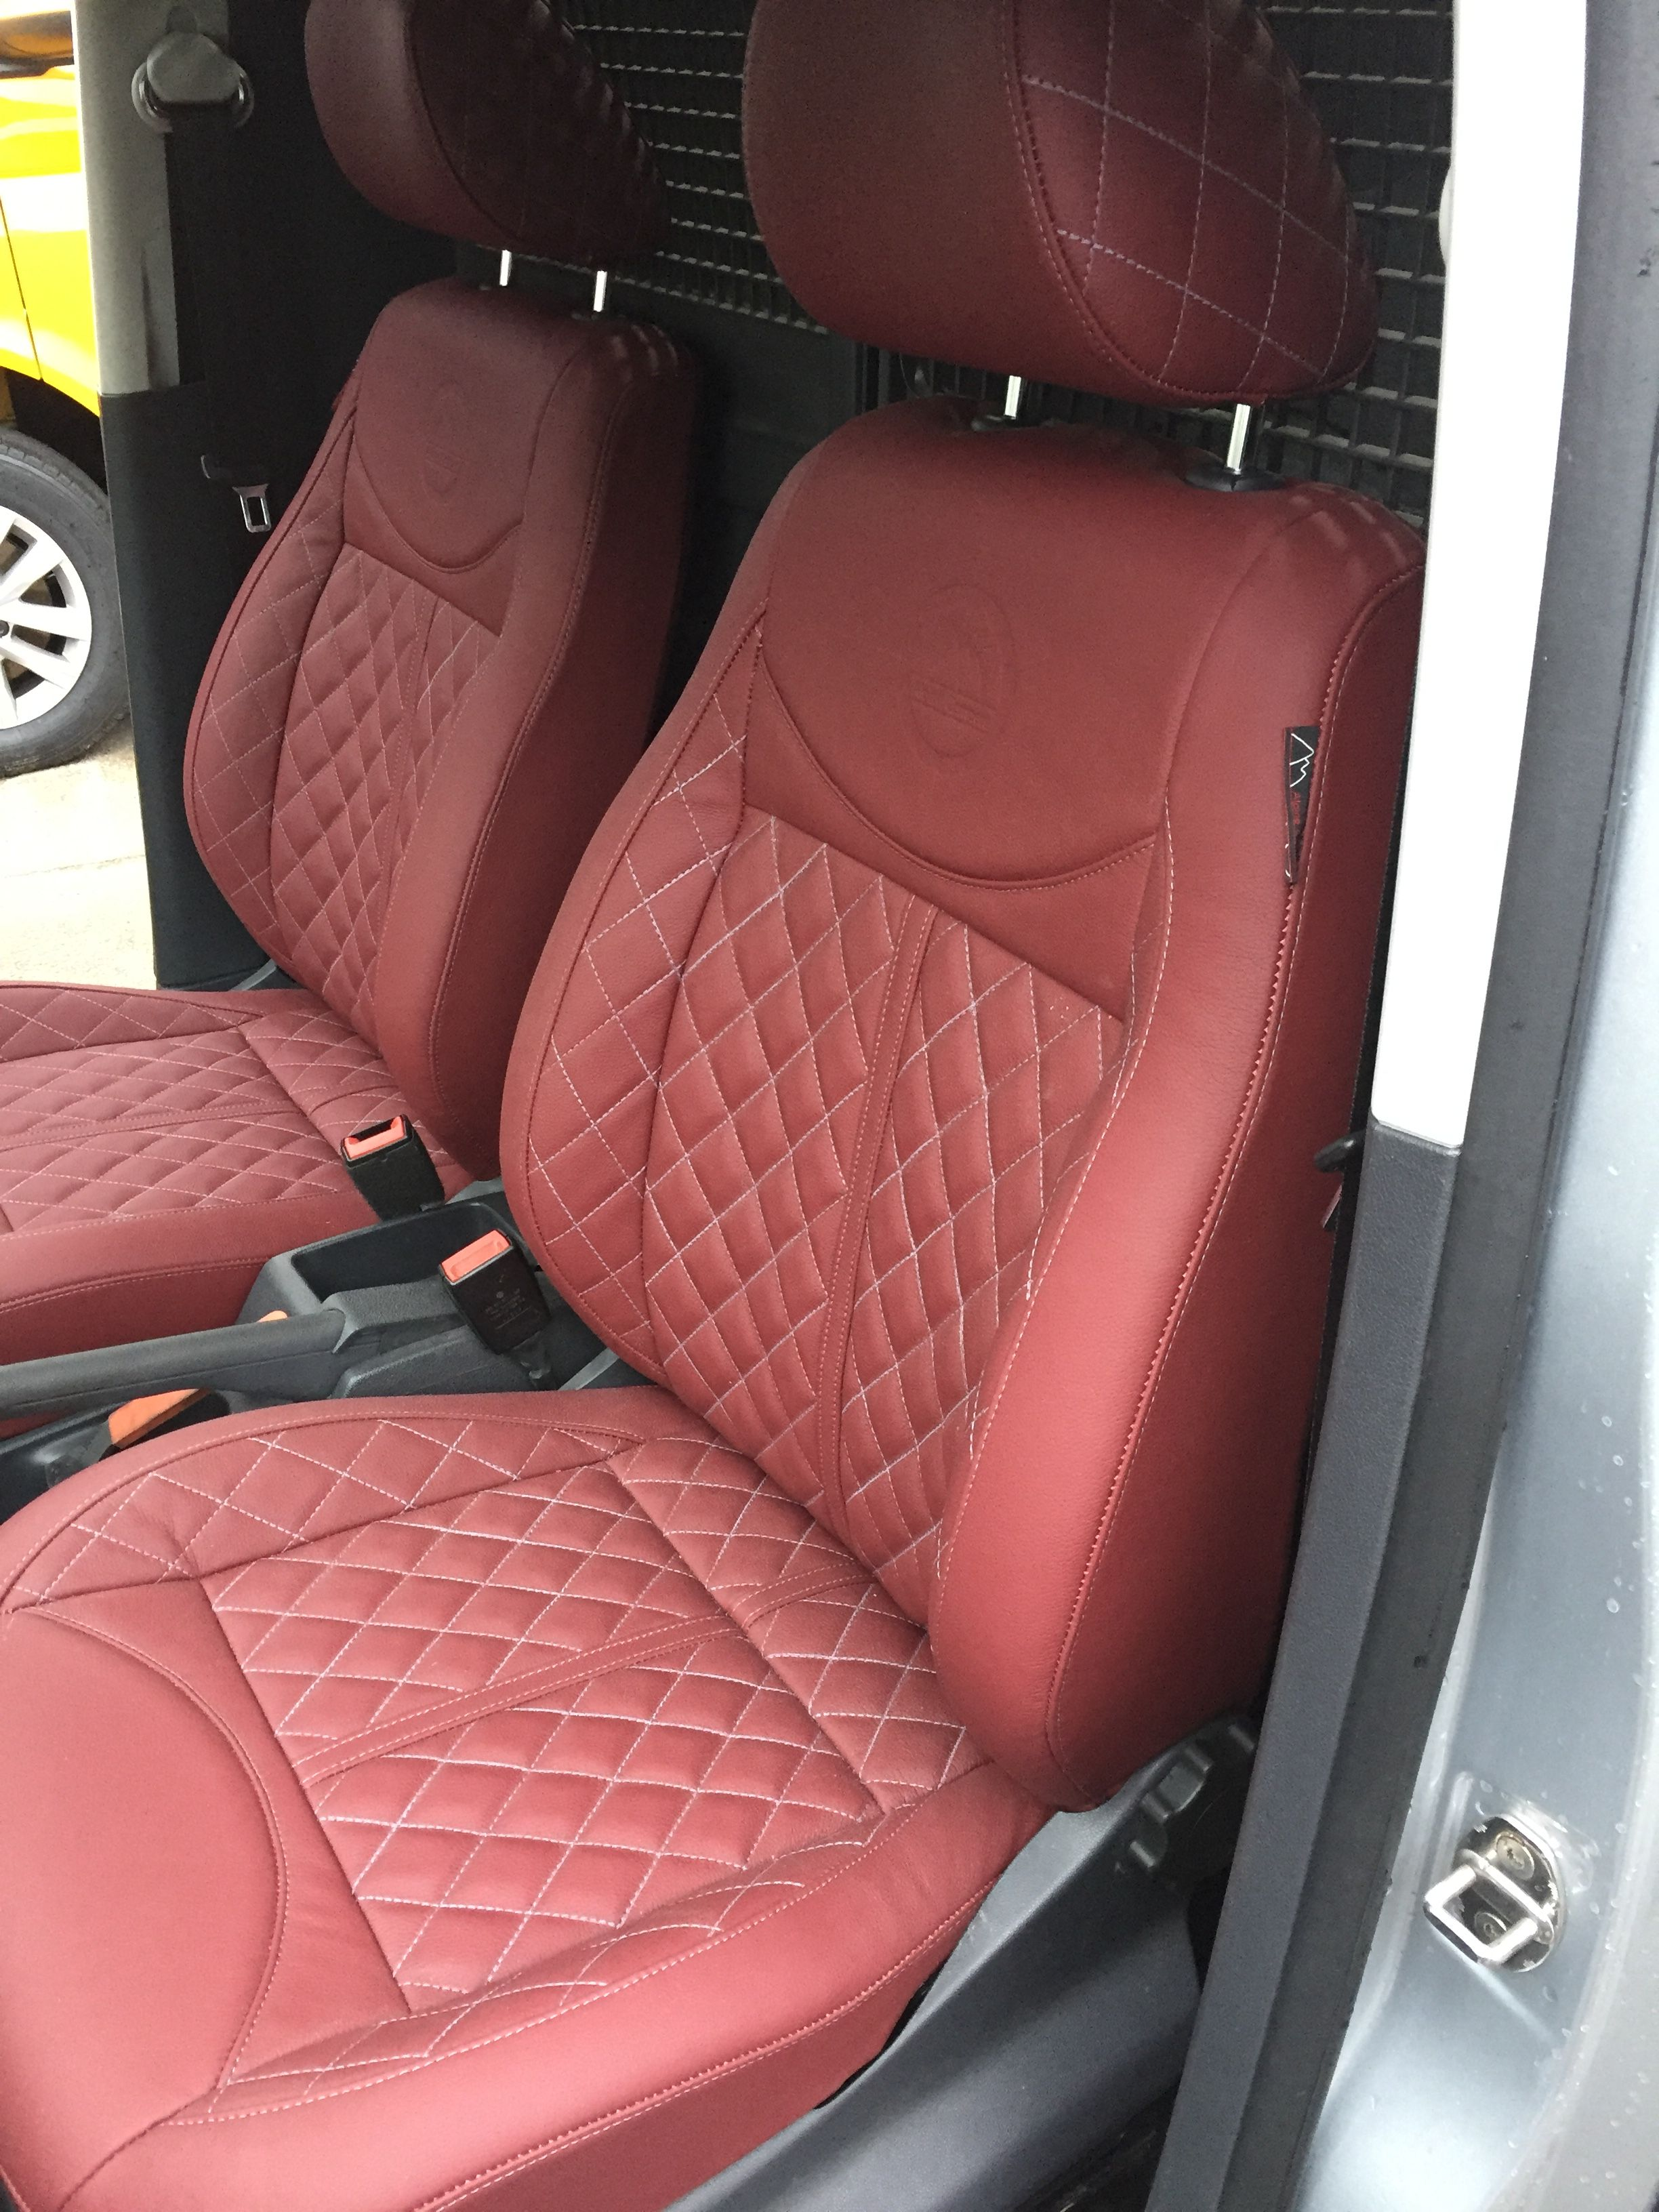 Phenomenal Full Grain Napa Leather With Alpine Design Van Camper Onthecornerstone Fun Painted Chair Ideas Images Onthecornerstoneorg